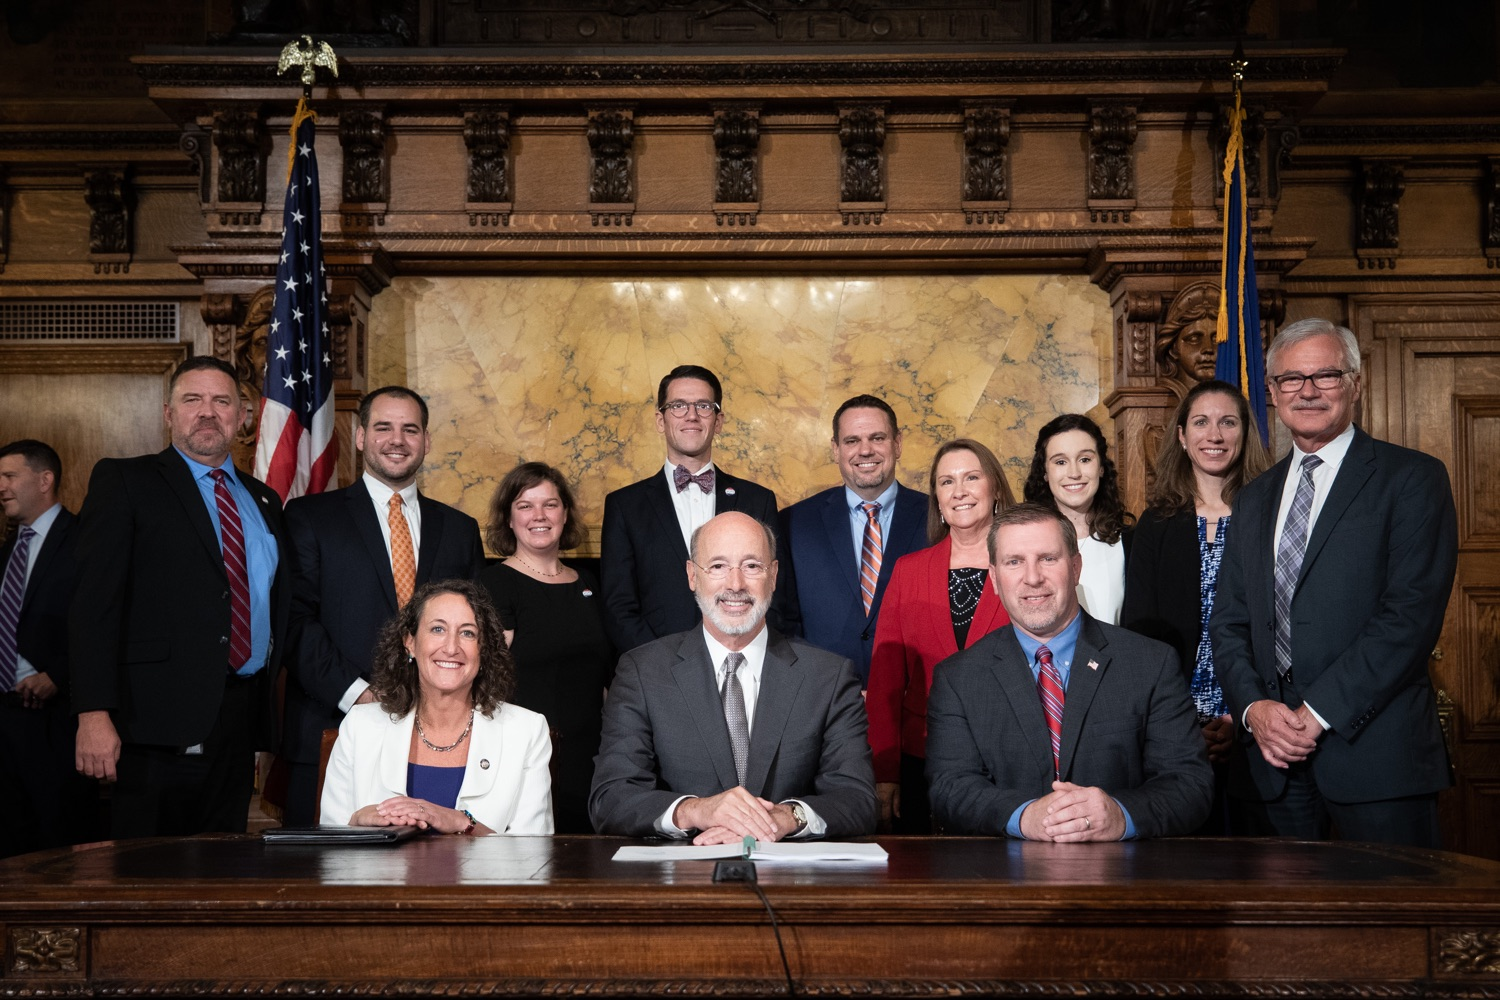 "<a href=""http://filesource.abacast.com/commonwealthofpa/photo/17554_gov_voter_reform_bill_dz_024.jpg"" target=""_blank"">⇣ Download Photo<br></a>Harrisburg, PA  Governor Tom Wolf posing with attendees after the bill signing. Governor Wolf made voting more convenient and secure by signing Act 77 of 2019, the most significant improvement to Pennsylvanias elections in more than 80 years. The bipartisan compromise legislation takes effect for the April 2020 primary election and makes Pennsylvania a national leader with voter-friendly election reforms."